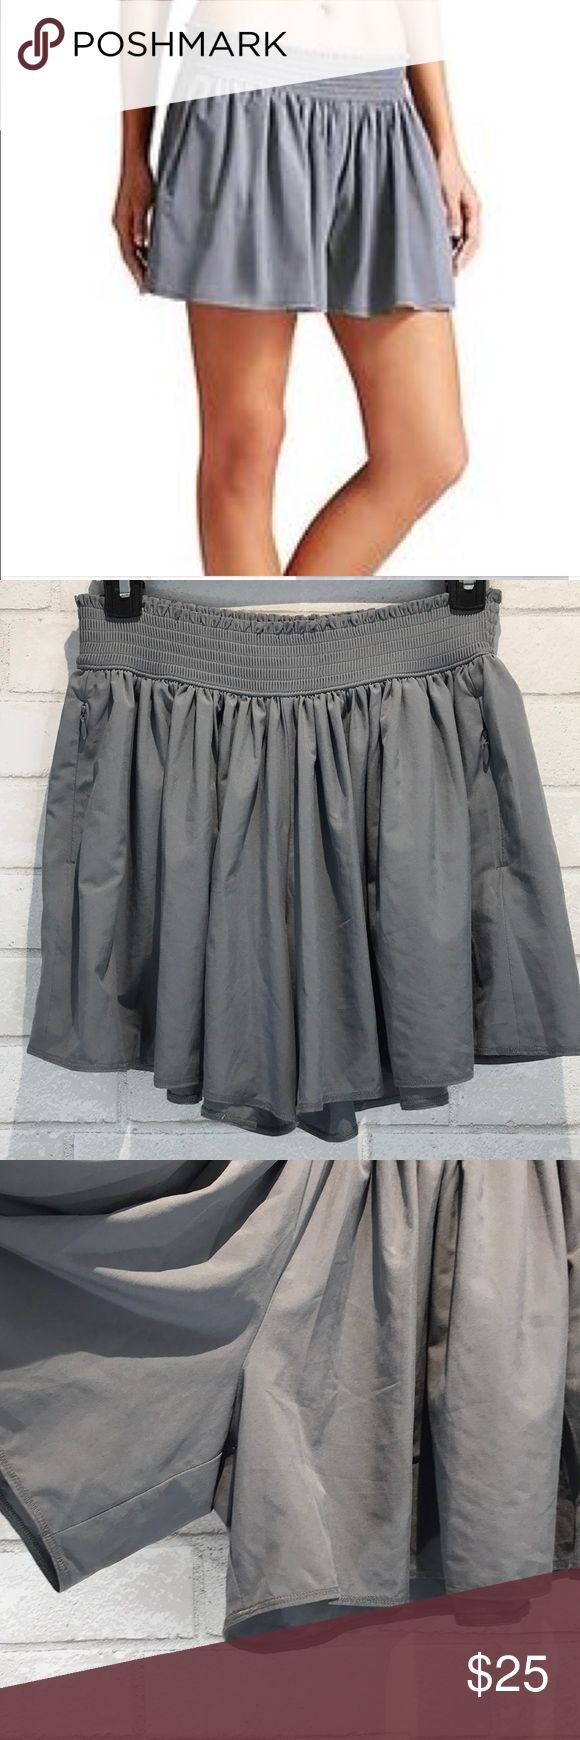 """Athleta Flowy Gray Athletic Sneaky Shorts This is a pair of Athletic Sneaky Shorts in a size XS. These shorts are flowy and almost appear like a skirt with pockets on each side. The shorts are in excellent used condition with no flaws. The total length measures 14"""" and there is an adjustable elastic waist. Thanks! Athleta Shorts"""